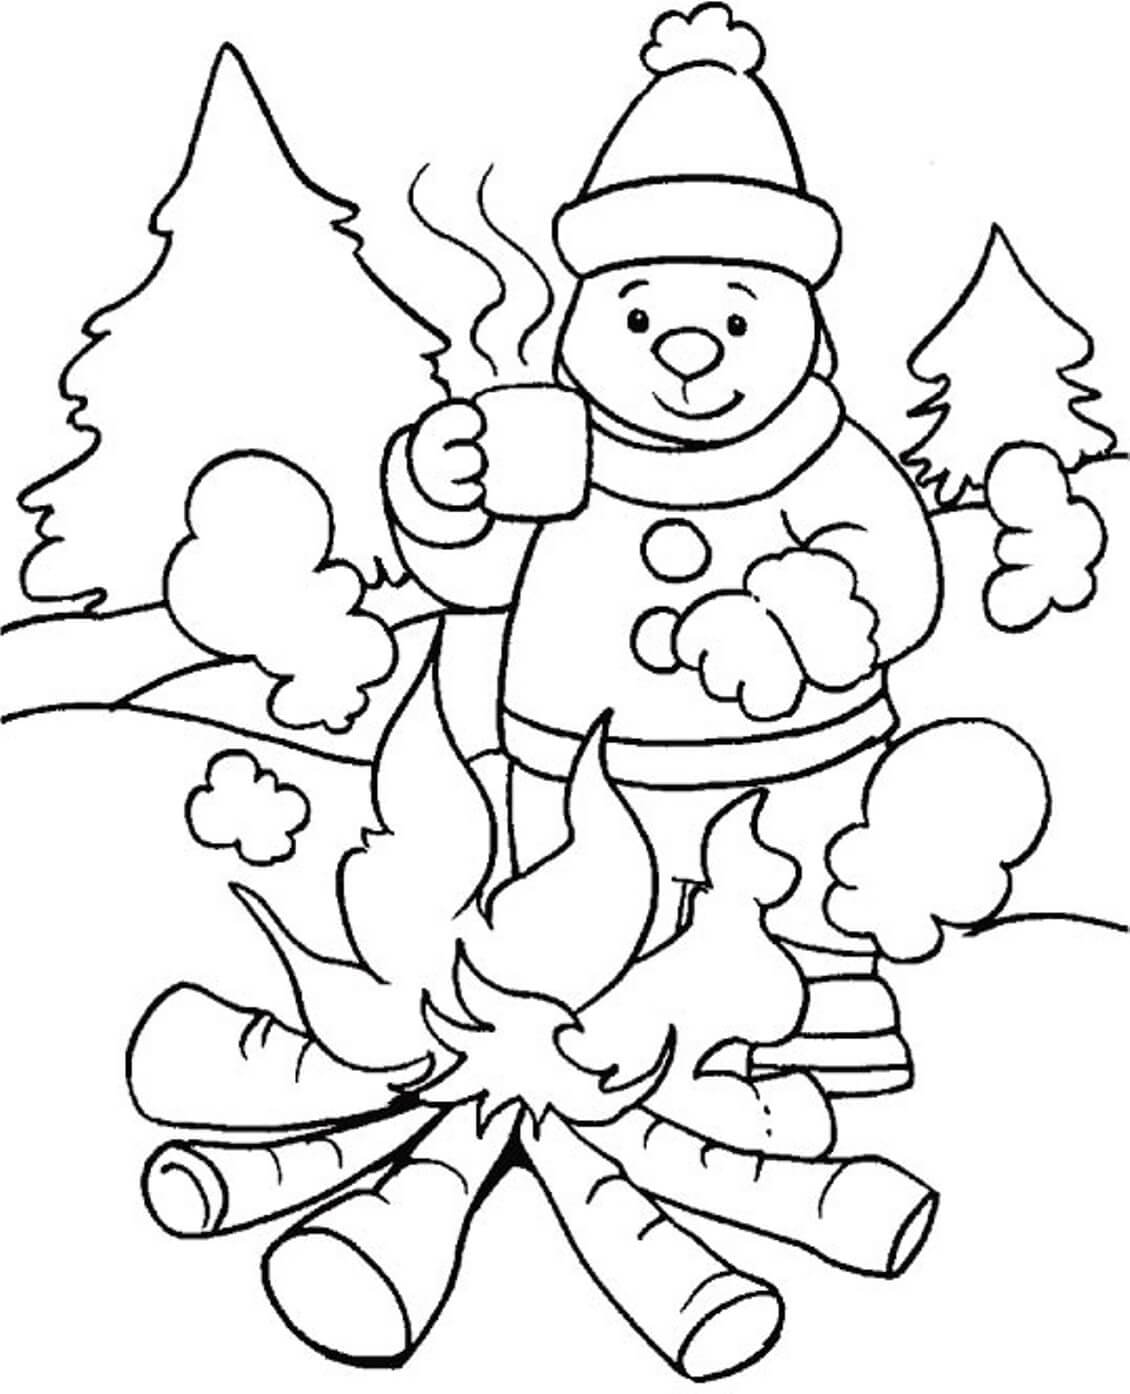 winter coloring winter puzzle coloring pages printable winter themed winter coloring